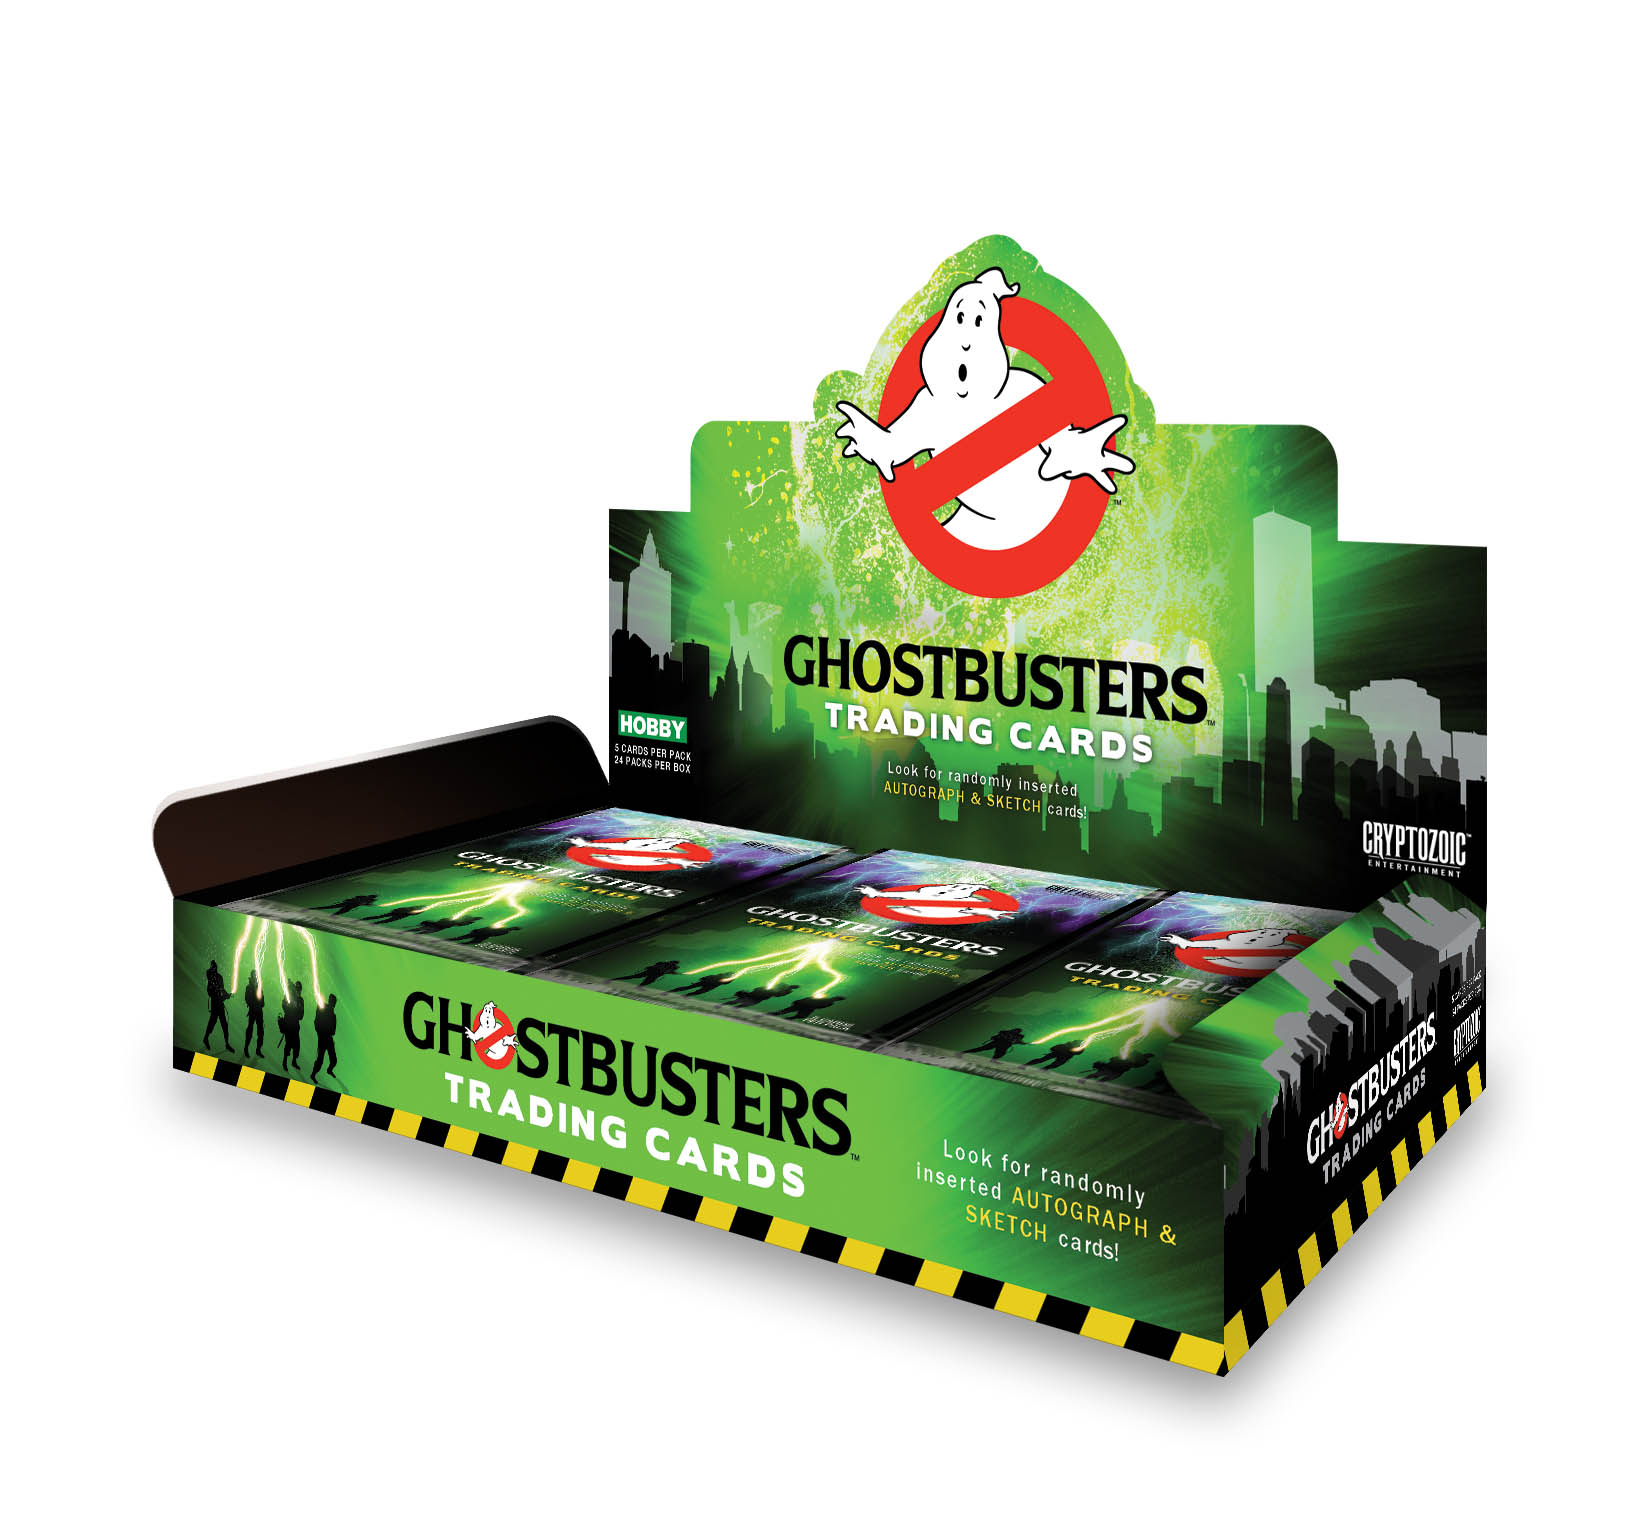 Ghostbusters 2016 Trading Cards Box